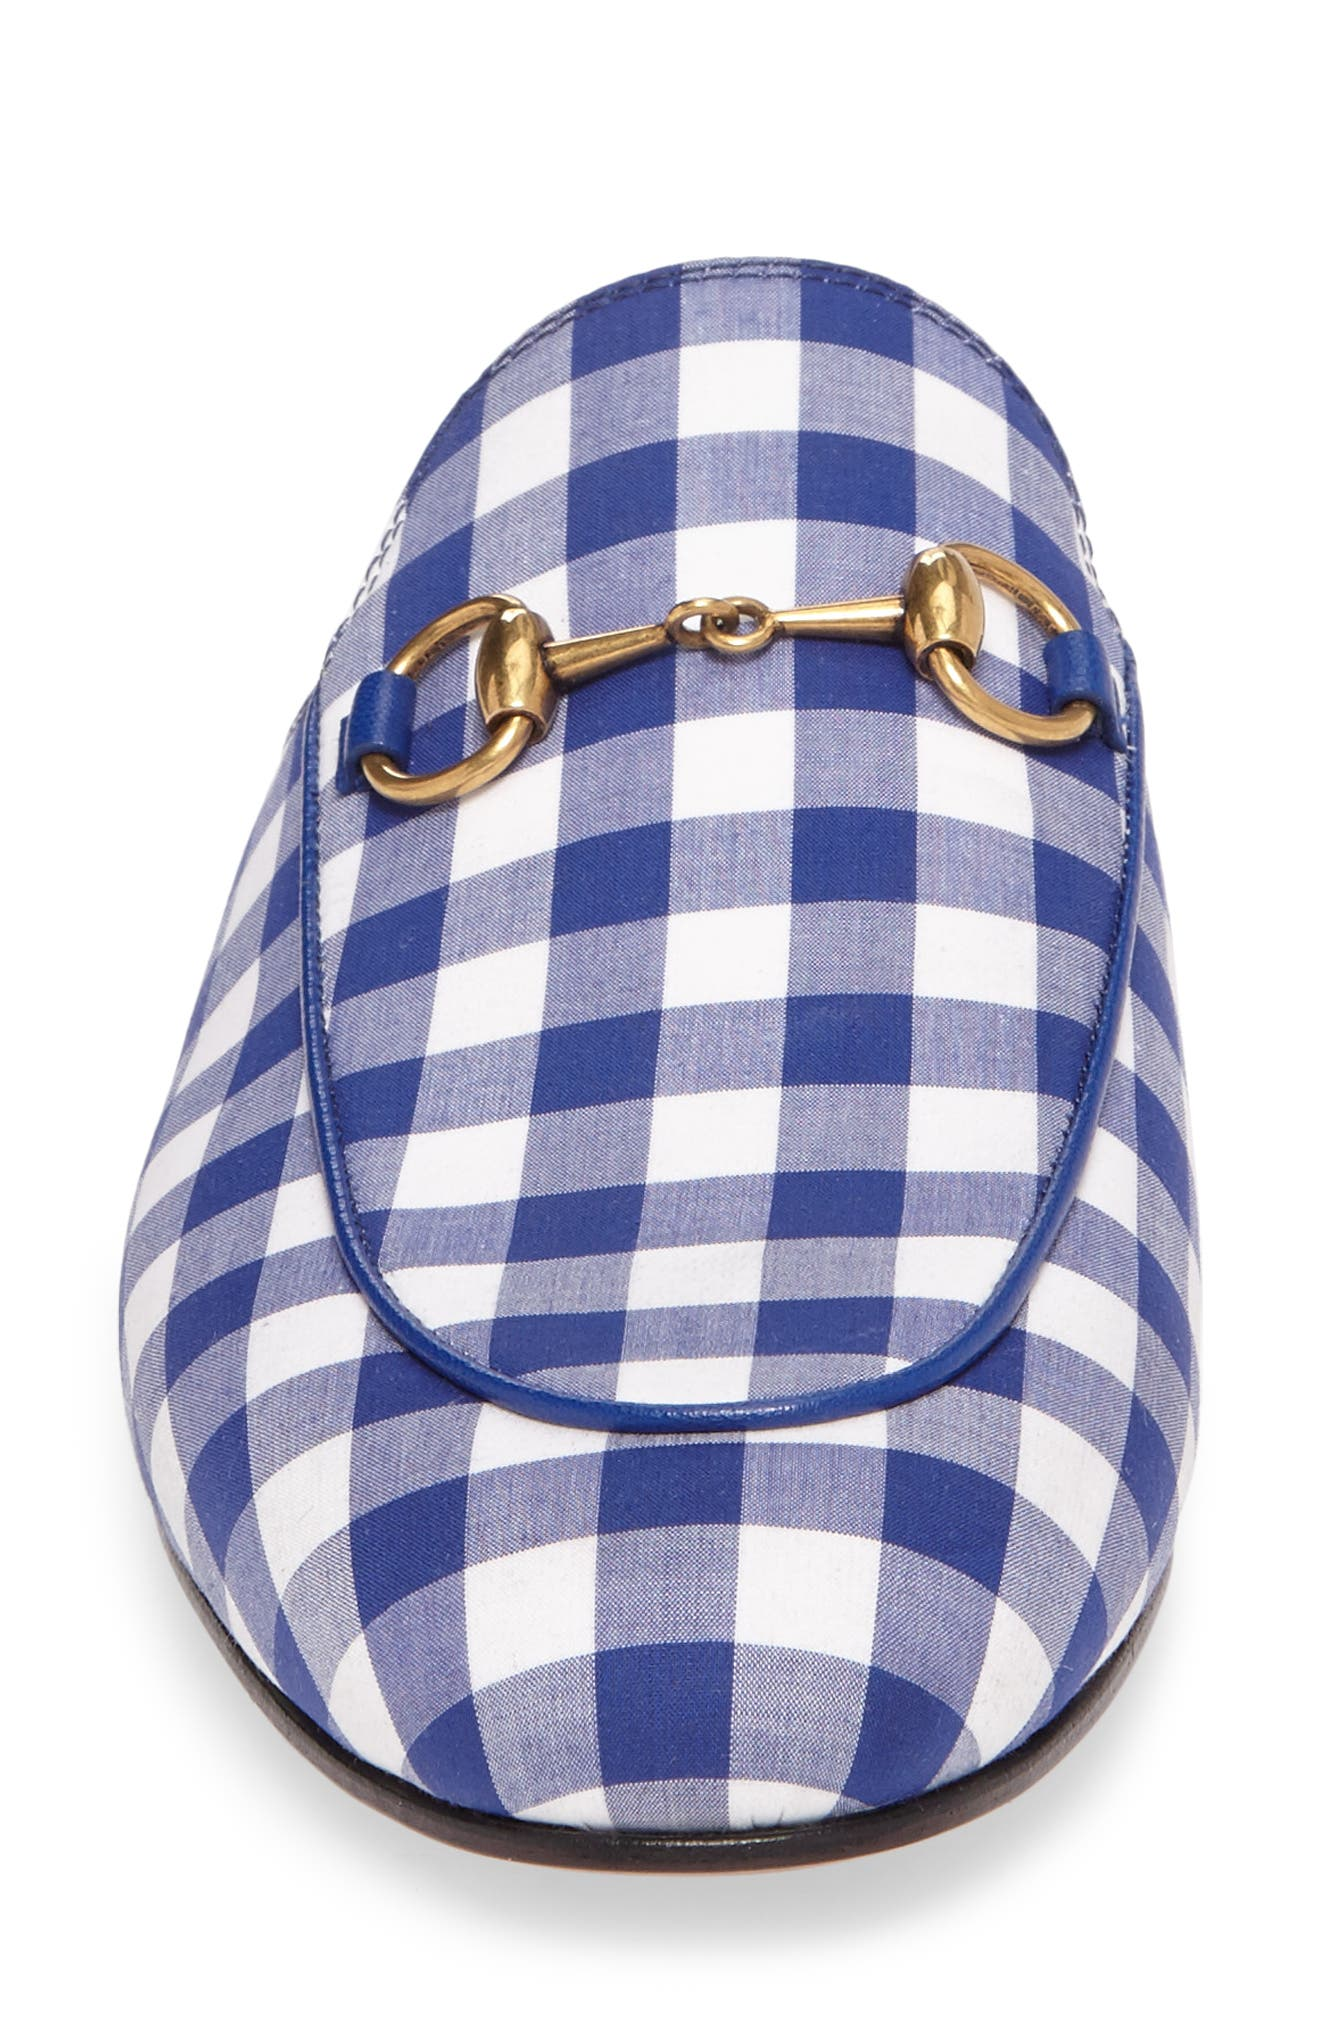 Princetown Gingham Loafer Mule,                             Alternate thumbnail 4, color,                             White/ Electric Blue